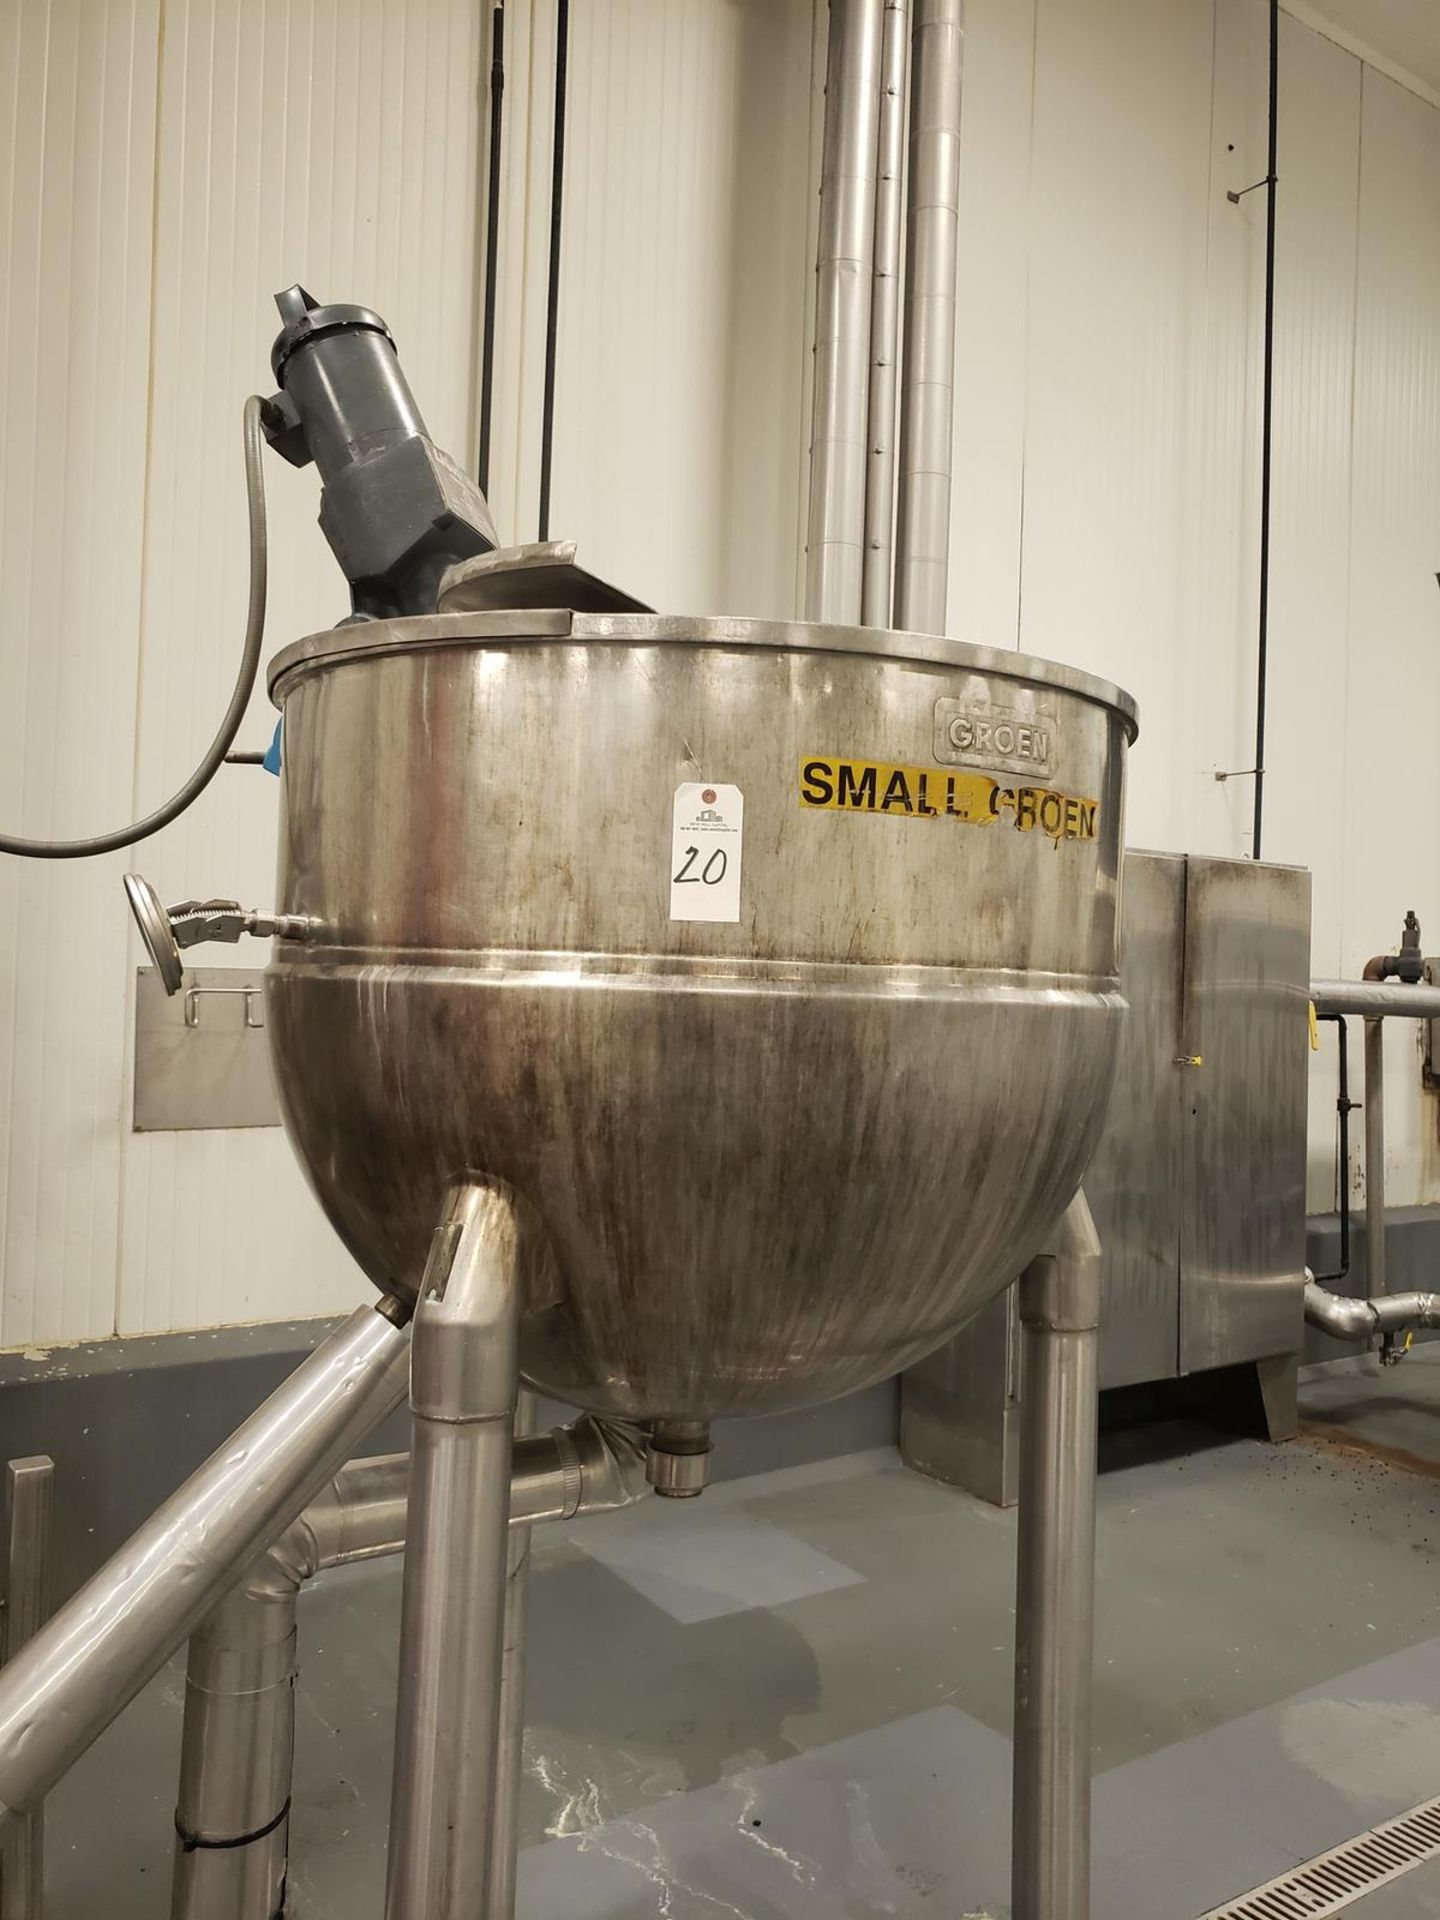 Lot 20 - Kettle - Groen 150 Gallon Jacketed, Agitated Mixing Kettle, M# N150SP - Loc: NJ | Rig Fee: $300